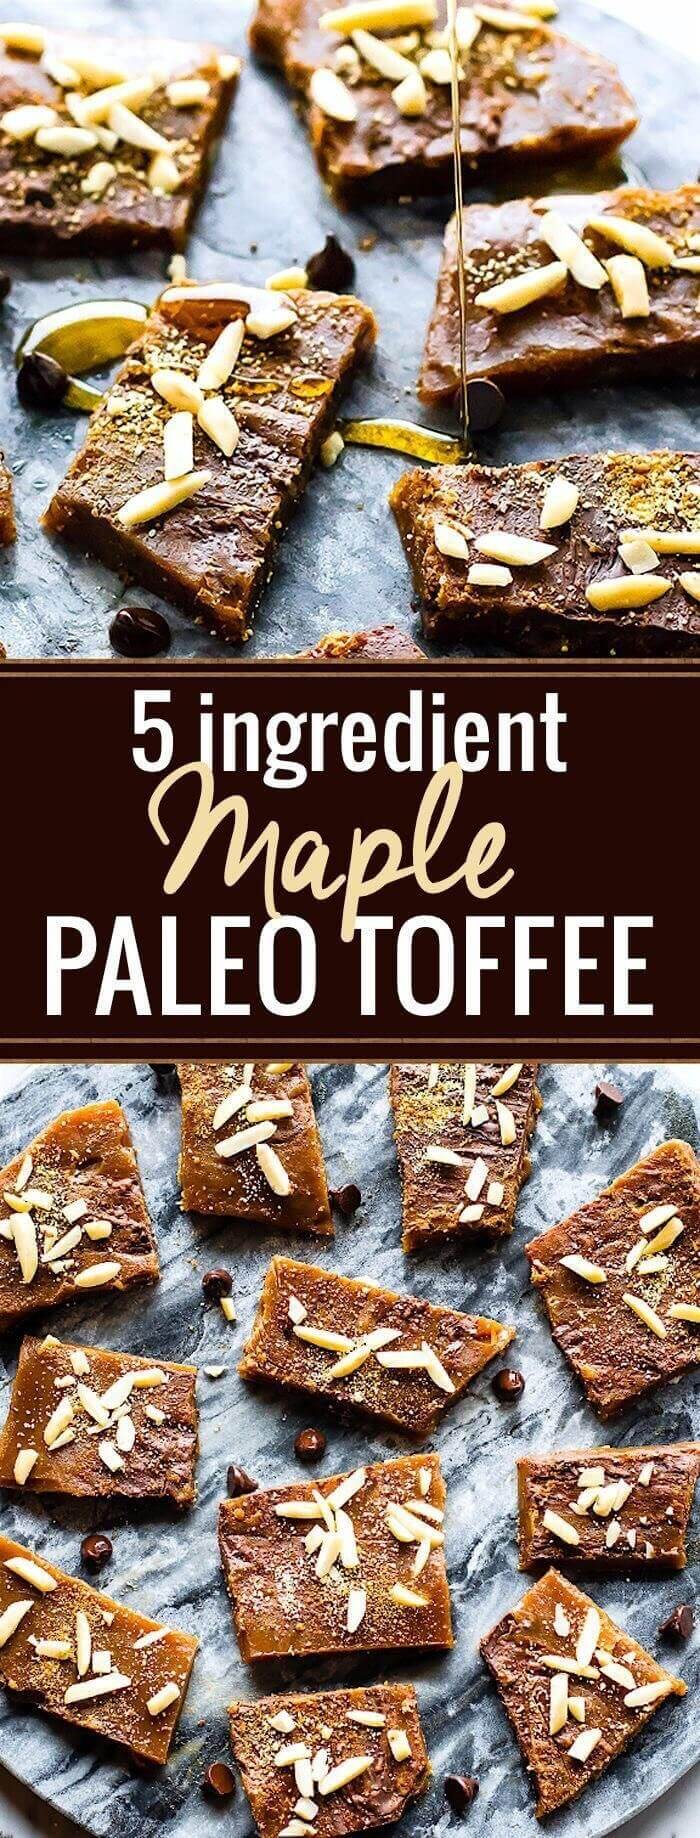 5-Ingredient Maple Paleo Toffee